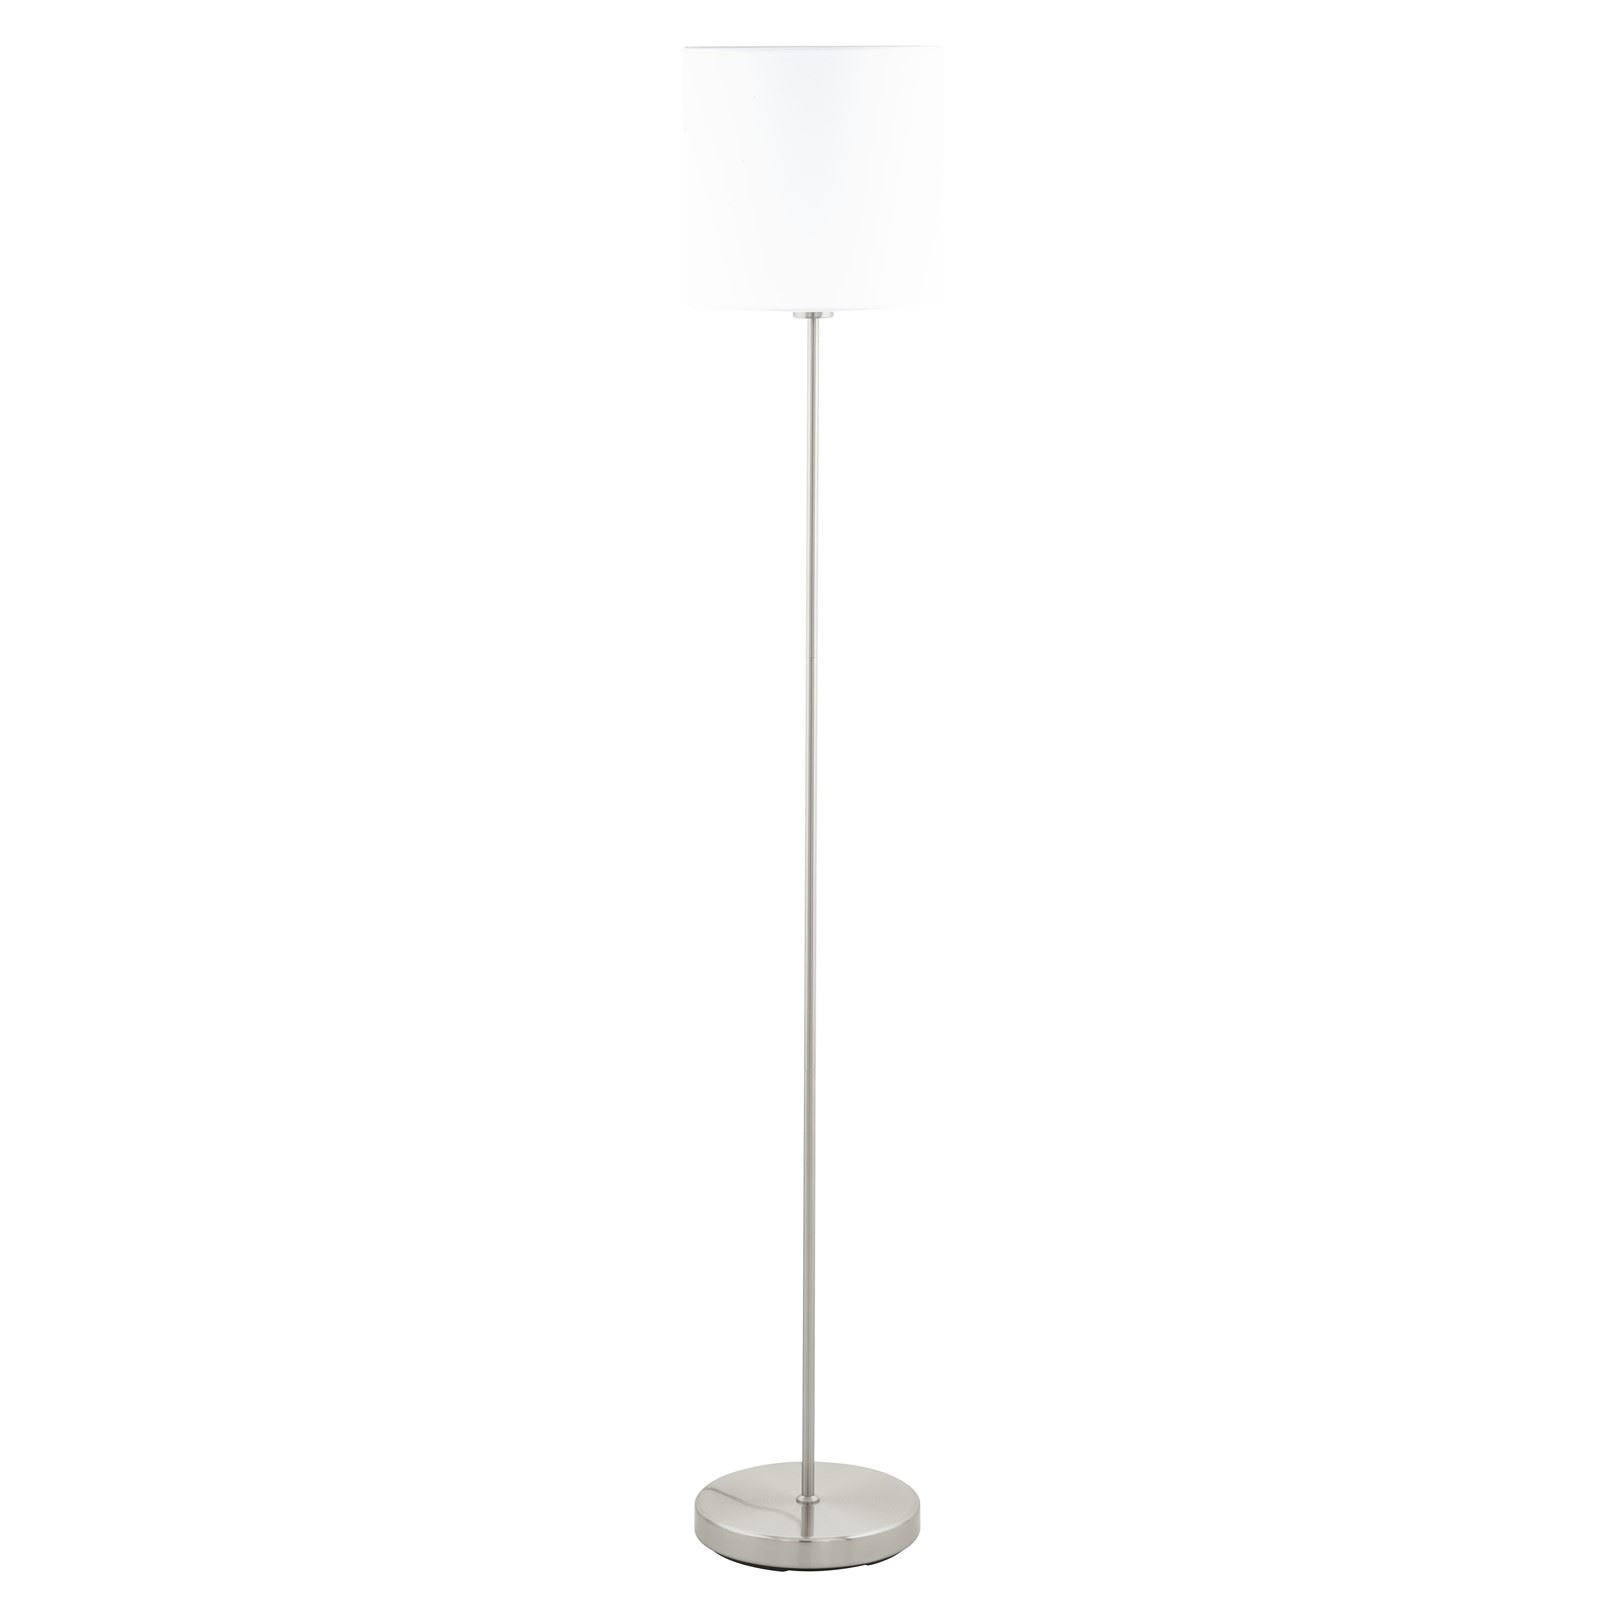 Pasteri Satin Nickel Floor Lamp White Shade With Foot-Switch